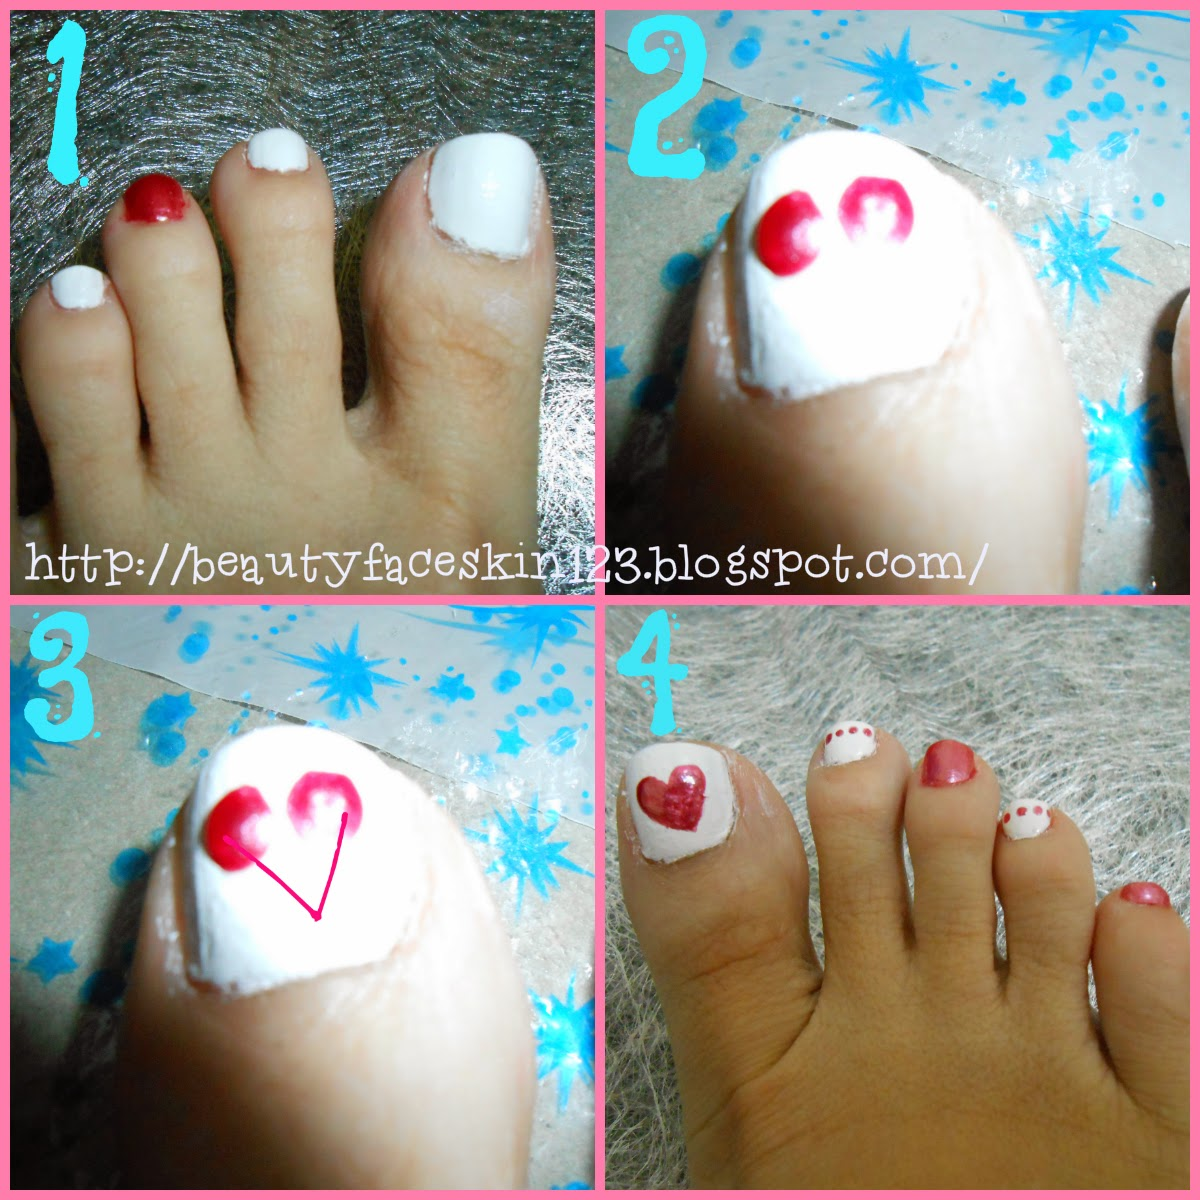 NAIL TUTORIAL- SIMPLE HEART SHAPE NAILS